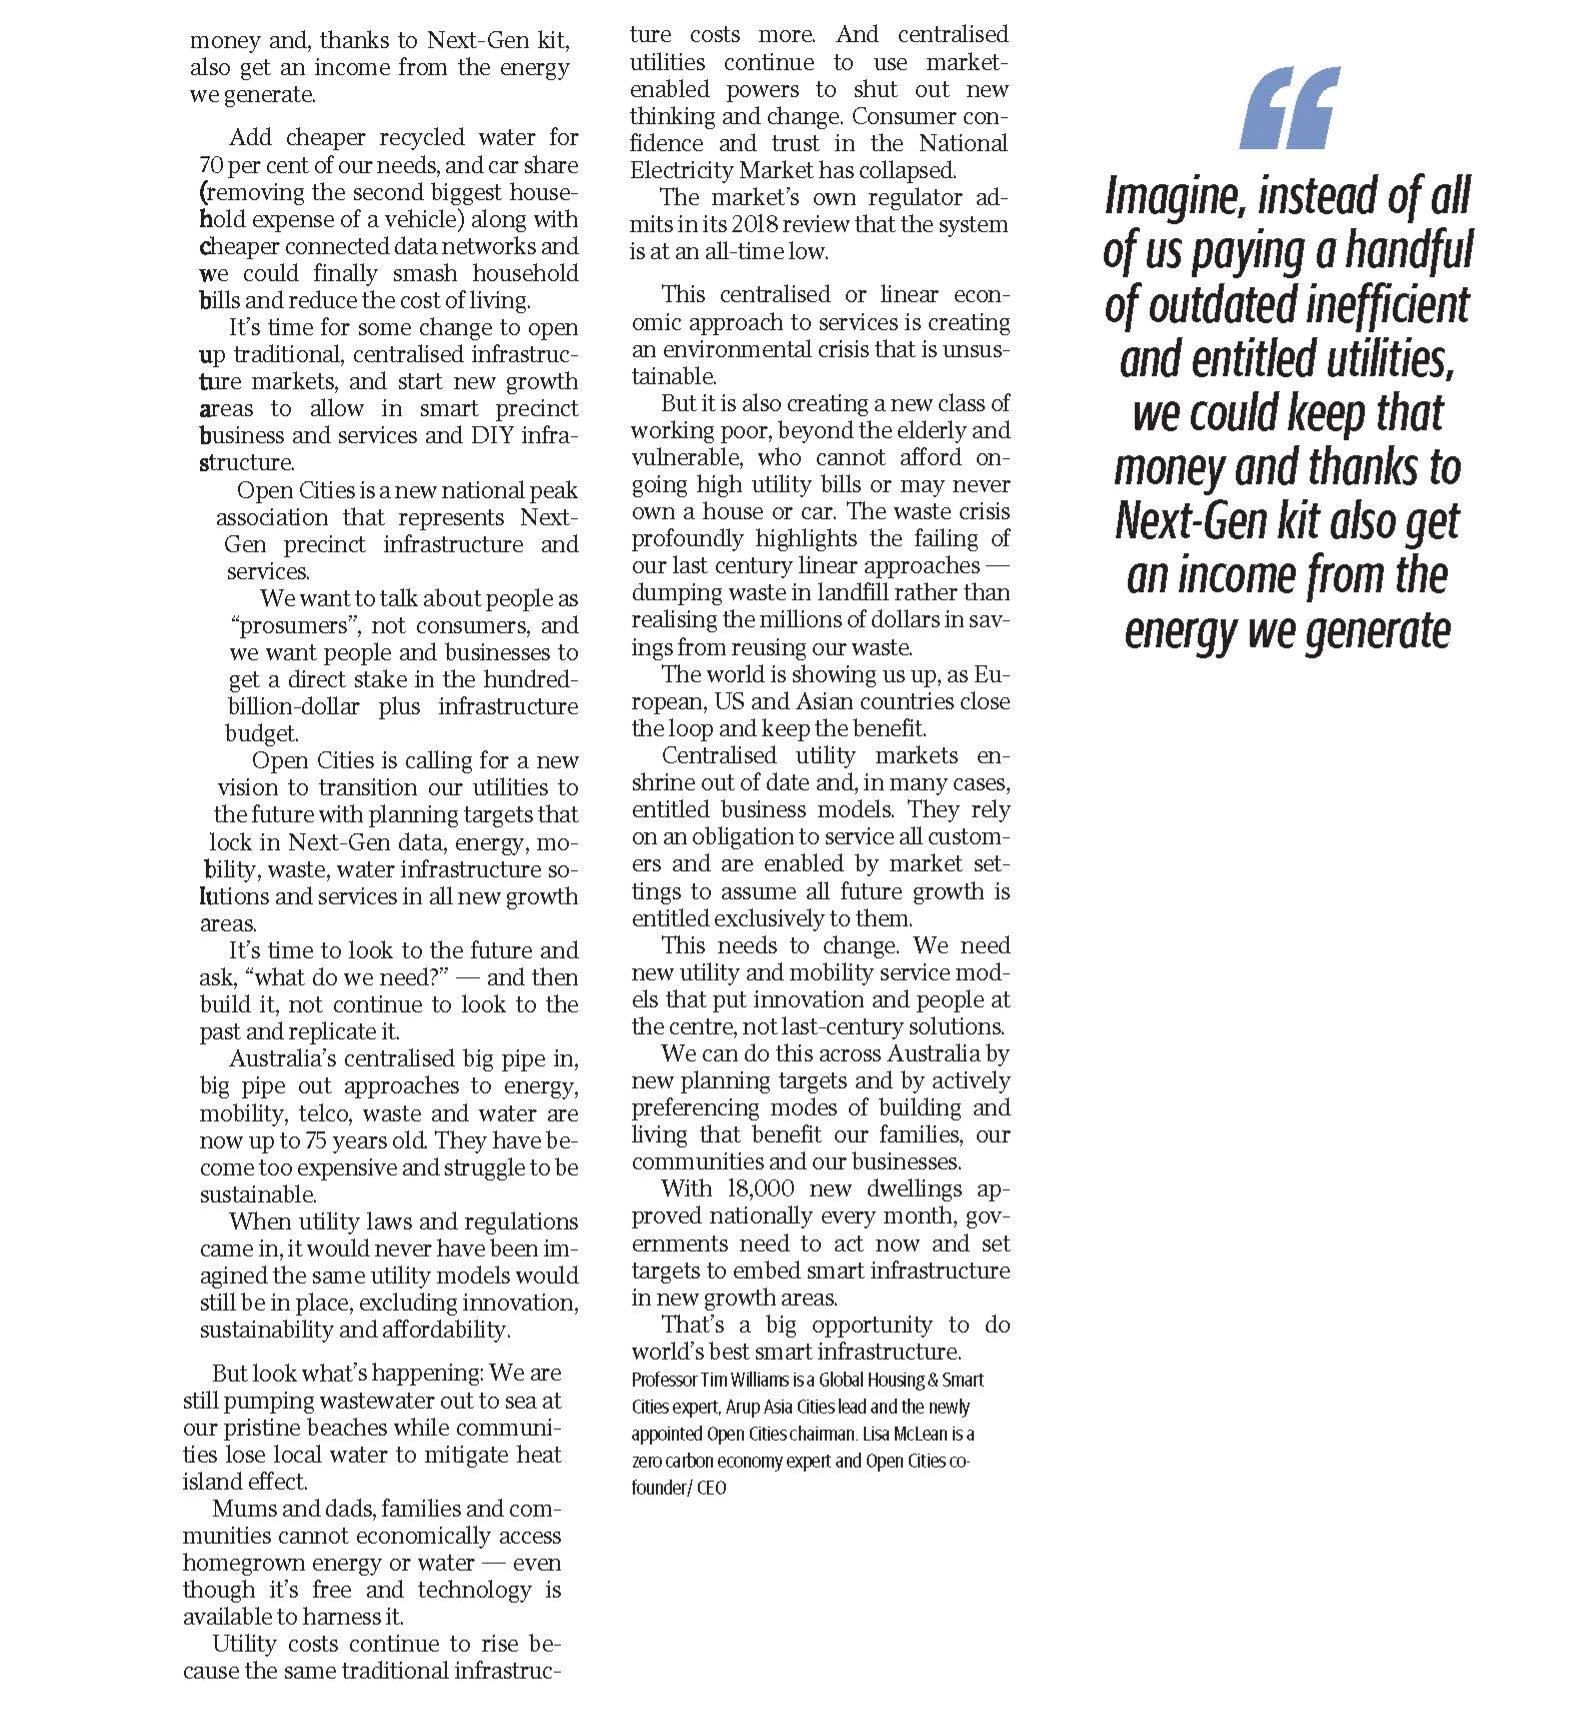 The Daily Telegraph Opinion p2/2